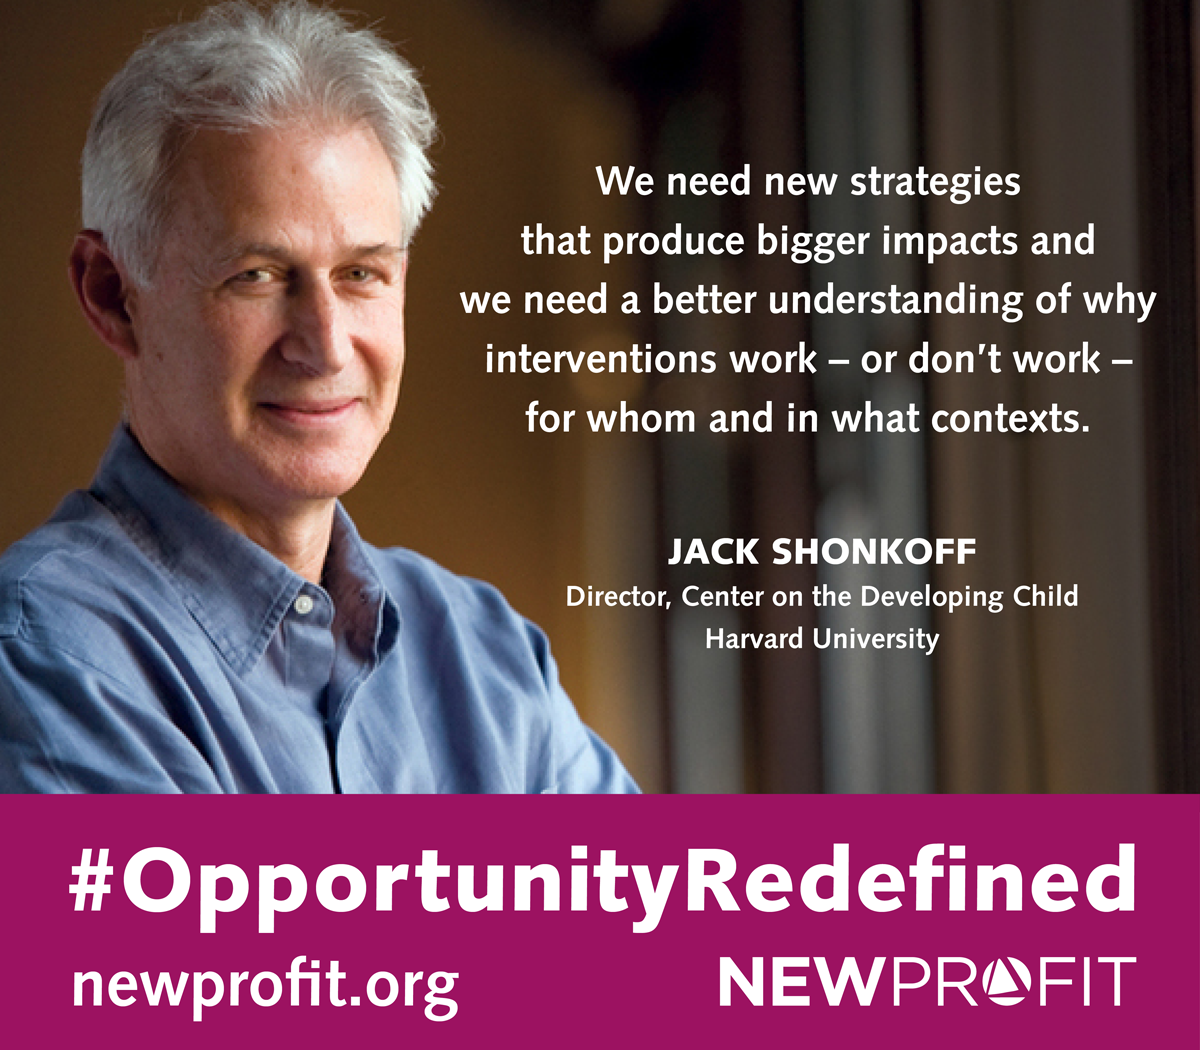 #OpportunityRedefined: Interview with Jack P. Shonkoff, Director of @HarvardCenter https://t.co/4gth8L11Nj https://t.co/HrRYBHNtU5